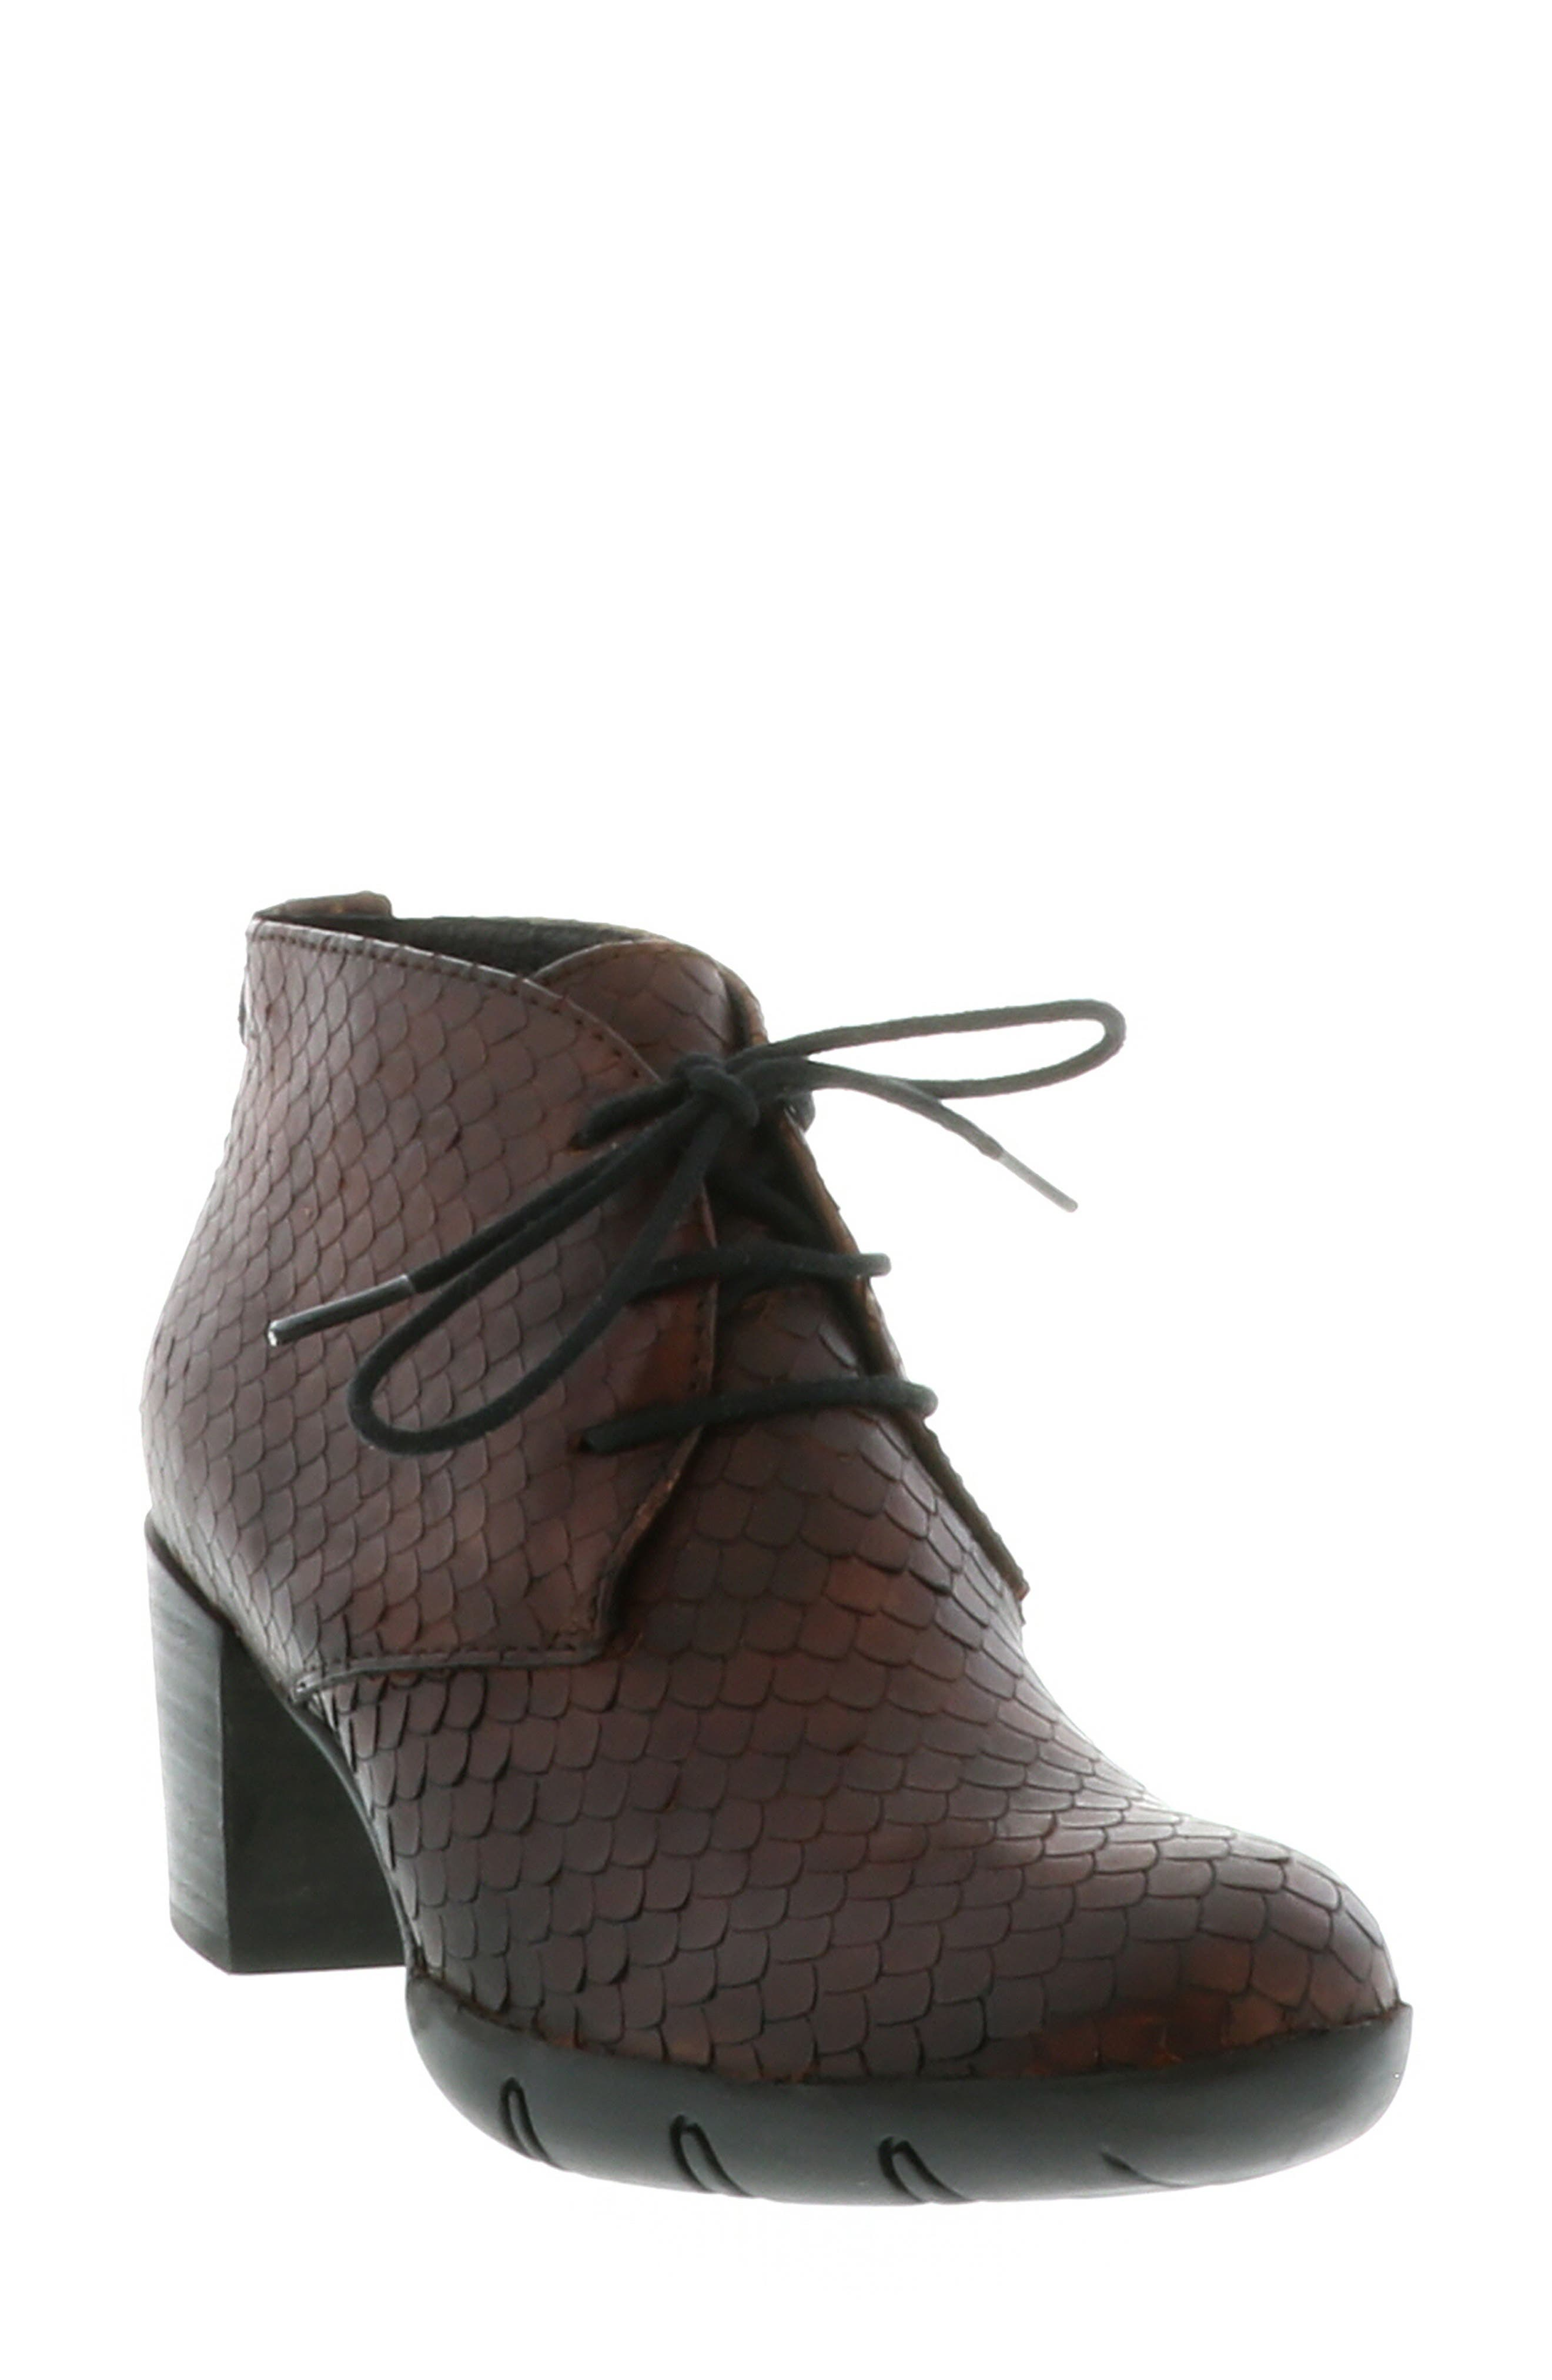 Wolky Bighorn Bootie, Brown